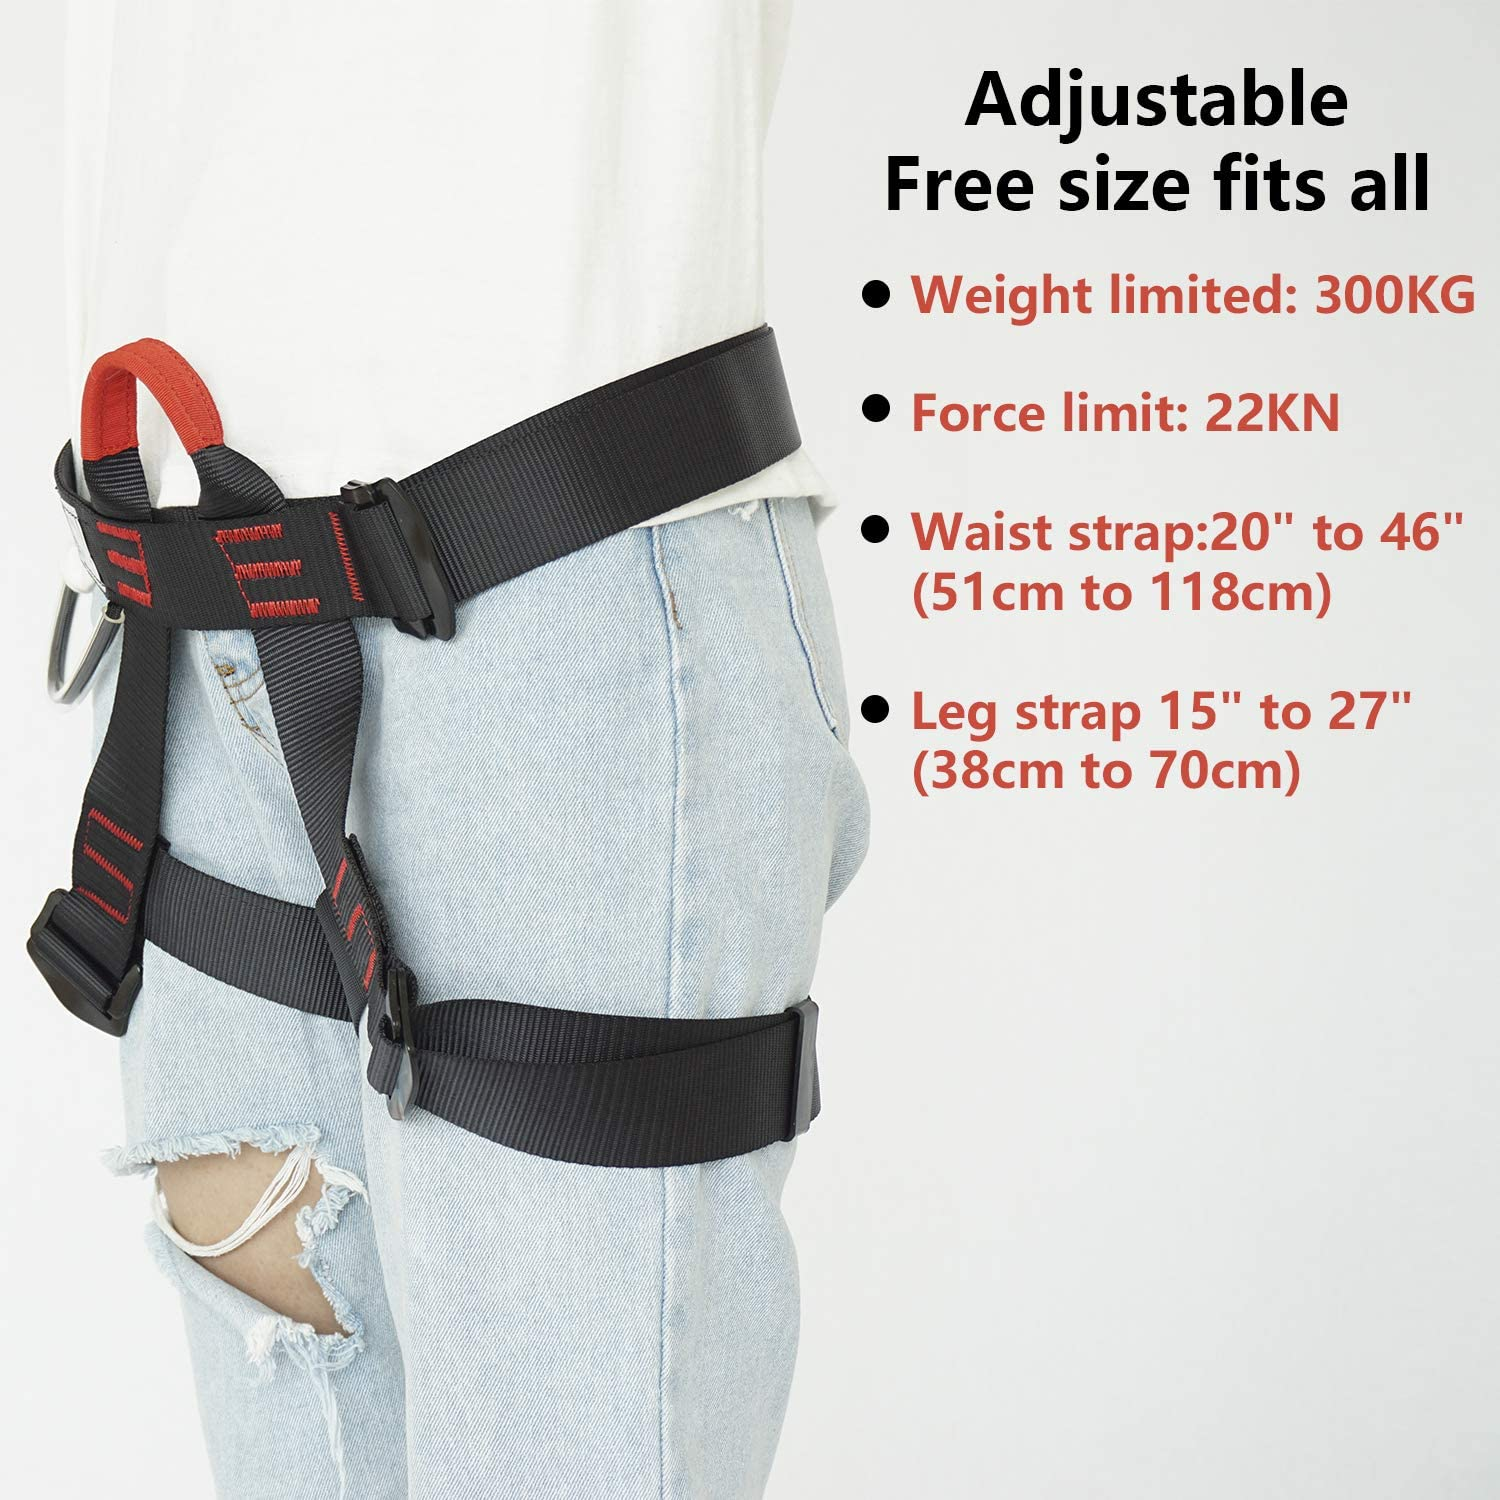 AmazeFan Climbing Harness, Thicken Rock Climbing Harness for Men Women, Protect Waist Safety Harness, Wider Half Body Harness for Mountaineering Rock Climbing Fire Rescuing Rappelling Tree Climbing : Sports & Outdoors